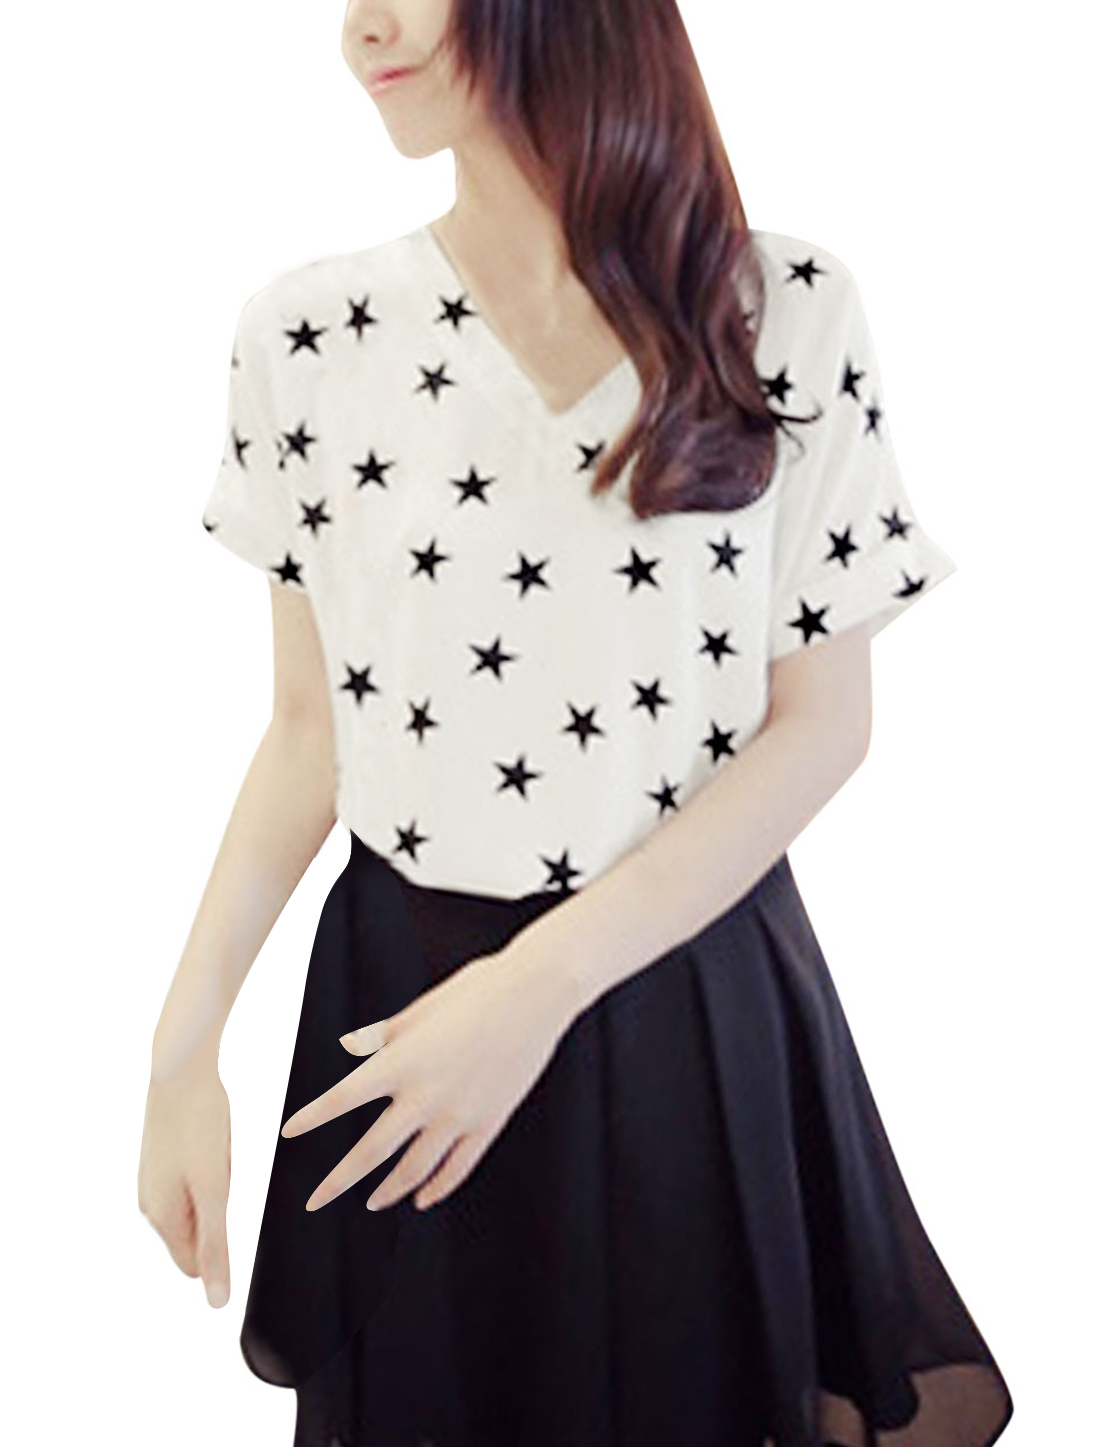 Lady Stars Print V-Neck Semi Sheer Chiffon Blouse White Black XS